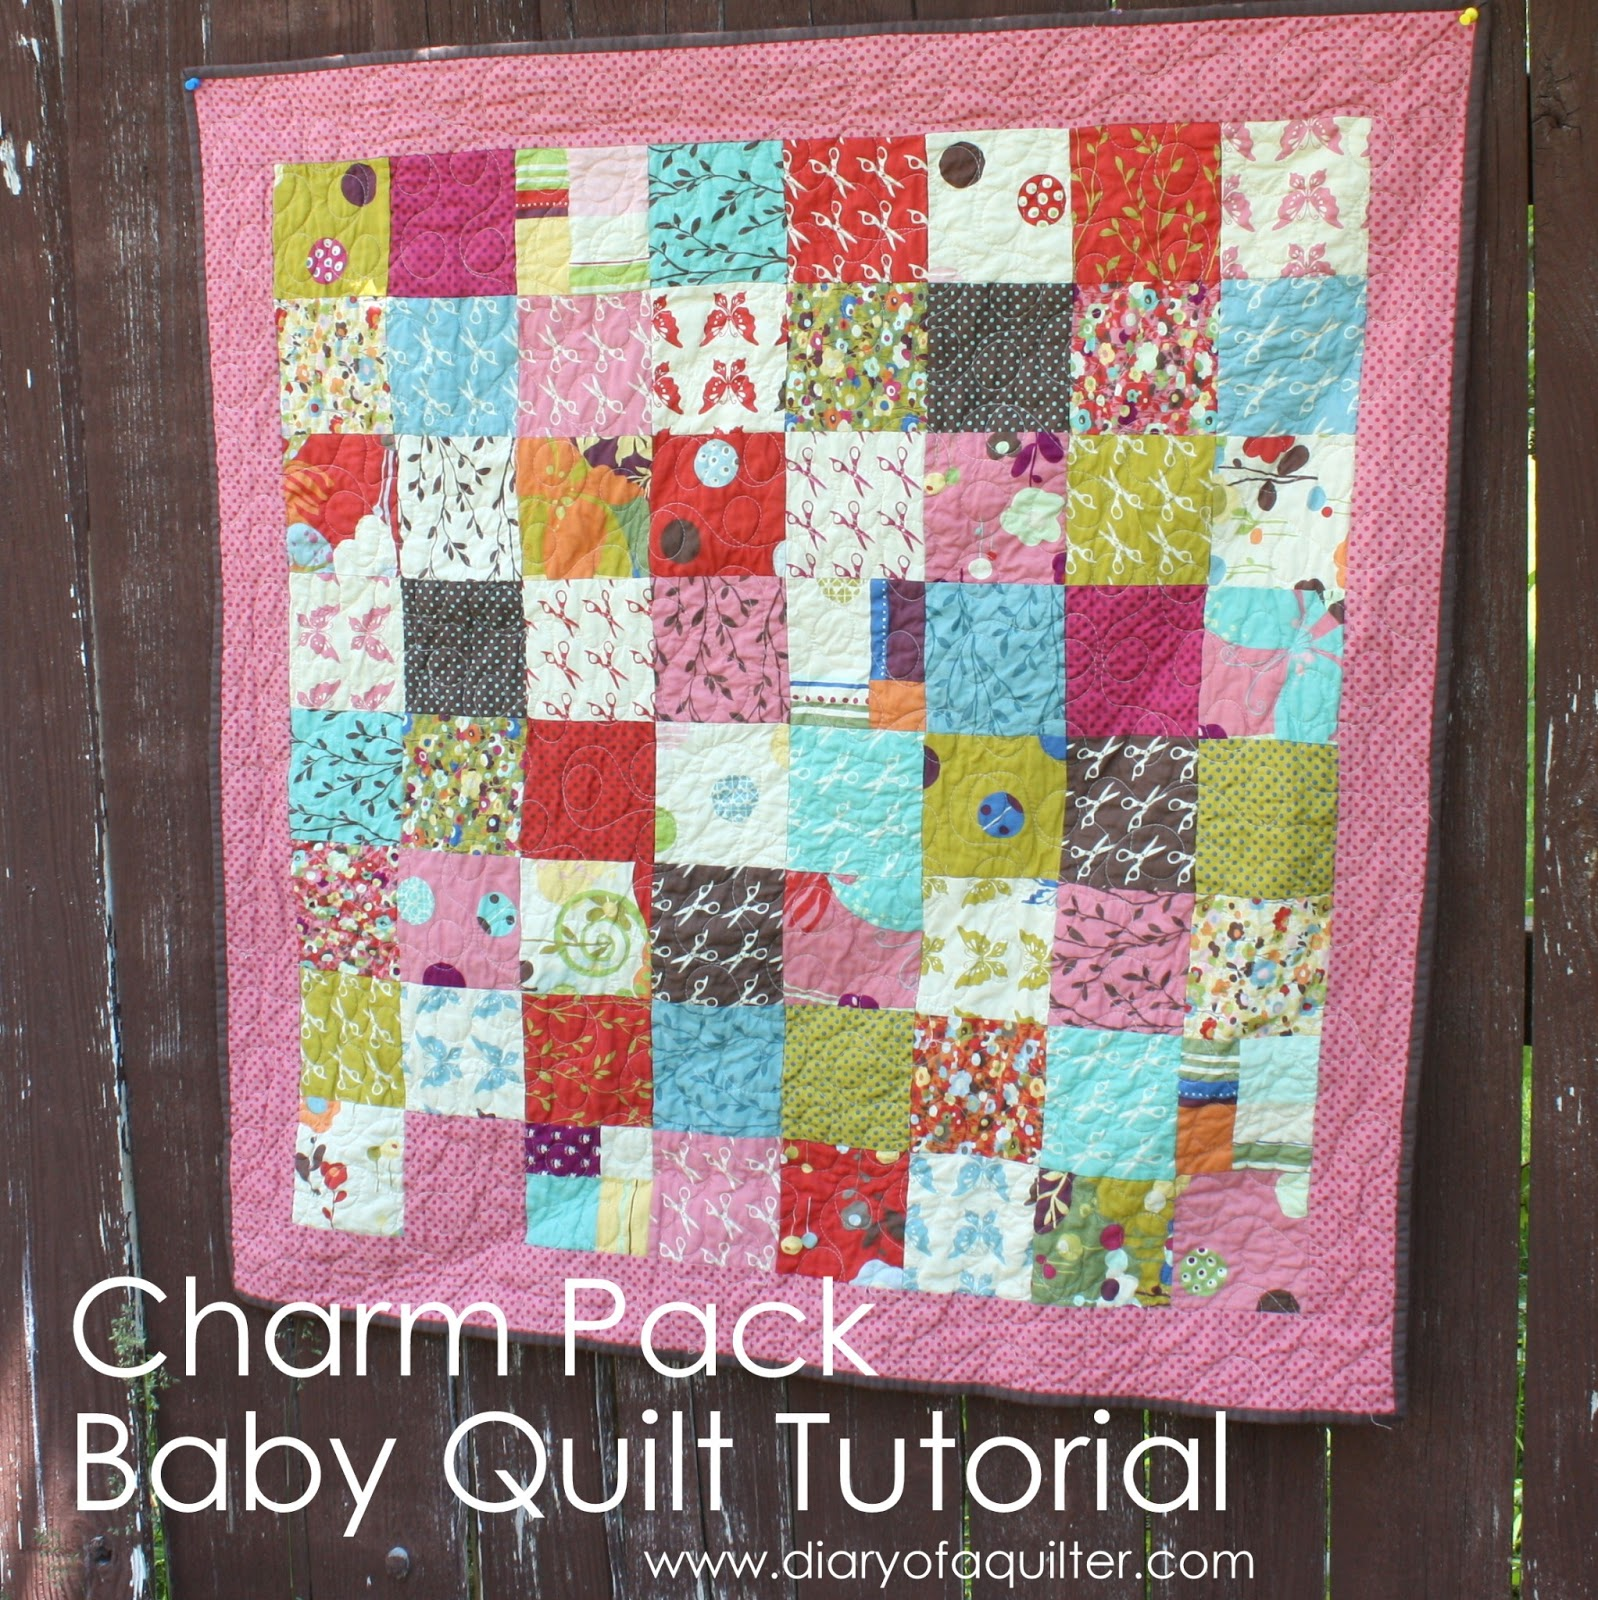 Quilting Patterns Charm Packs : Charm-pack baby quilt tutorial - Diary of a Quilter - a quilt blog